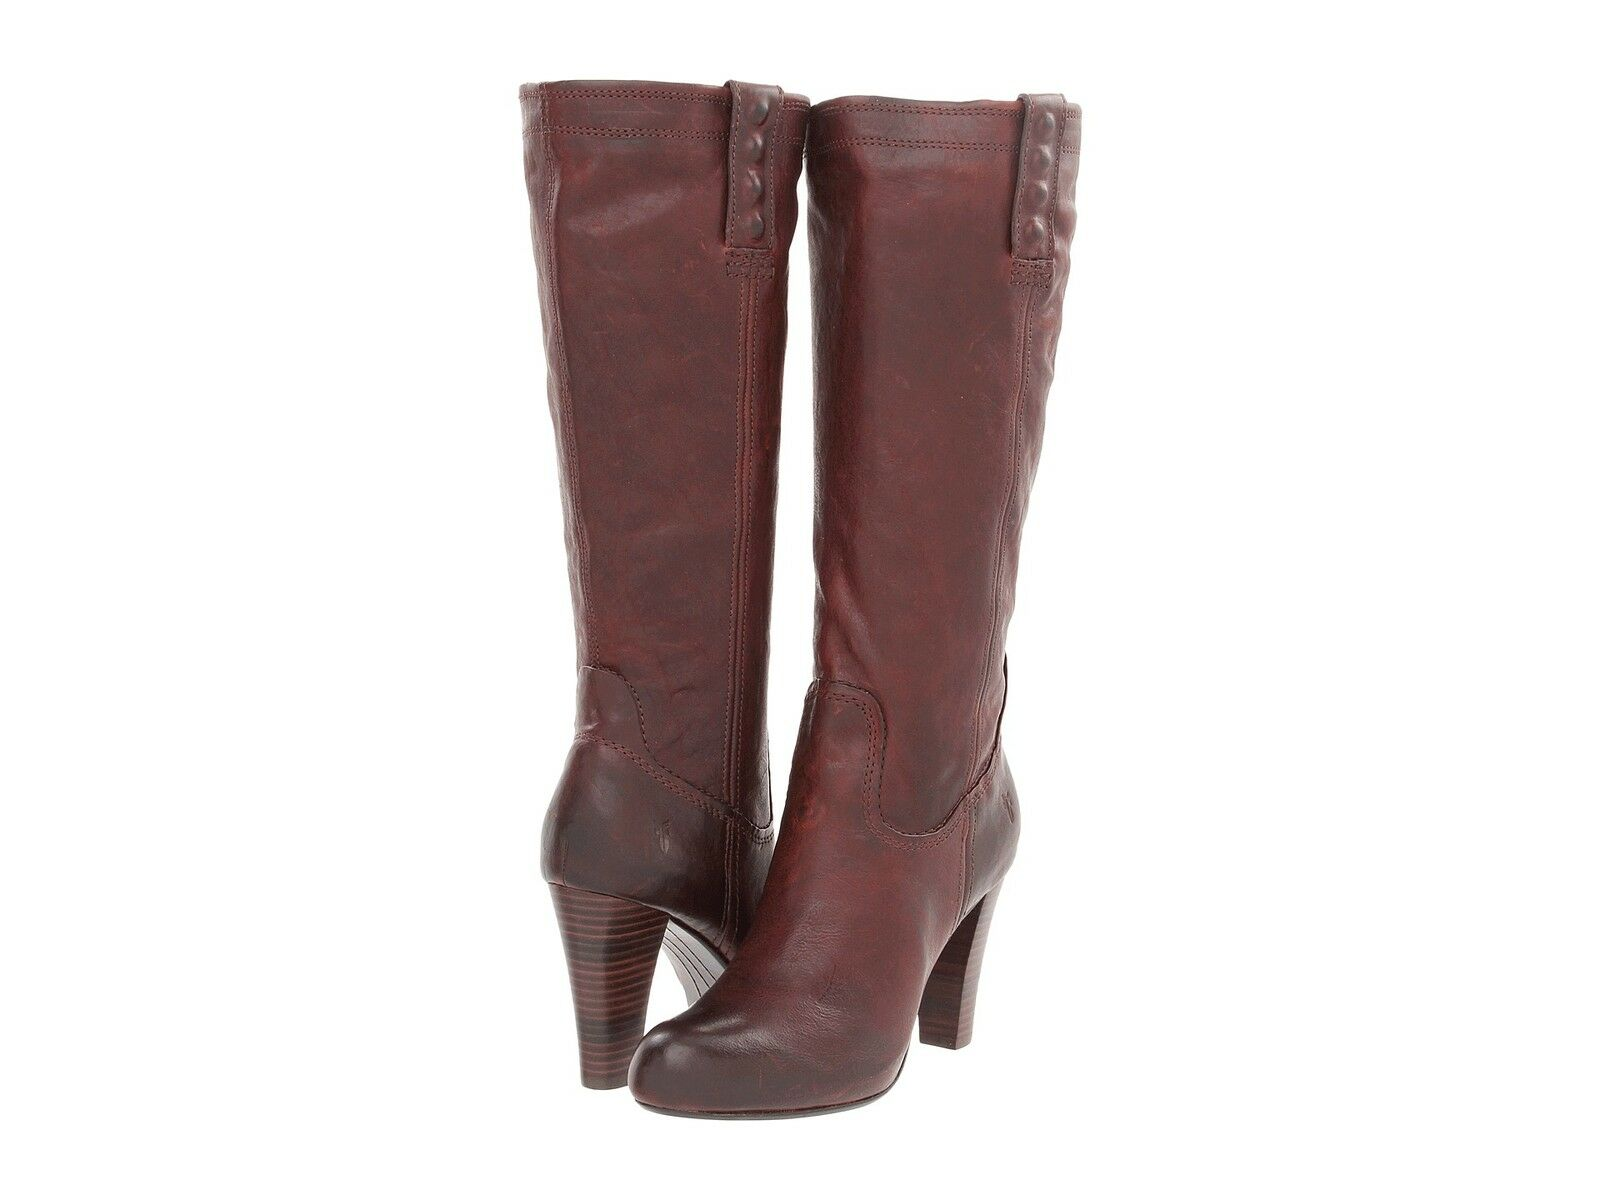 Frye Womens Miranda Stud Tall Dark Brown Pull On Casual Mid Calf Heels Boots